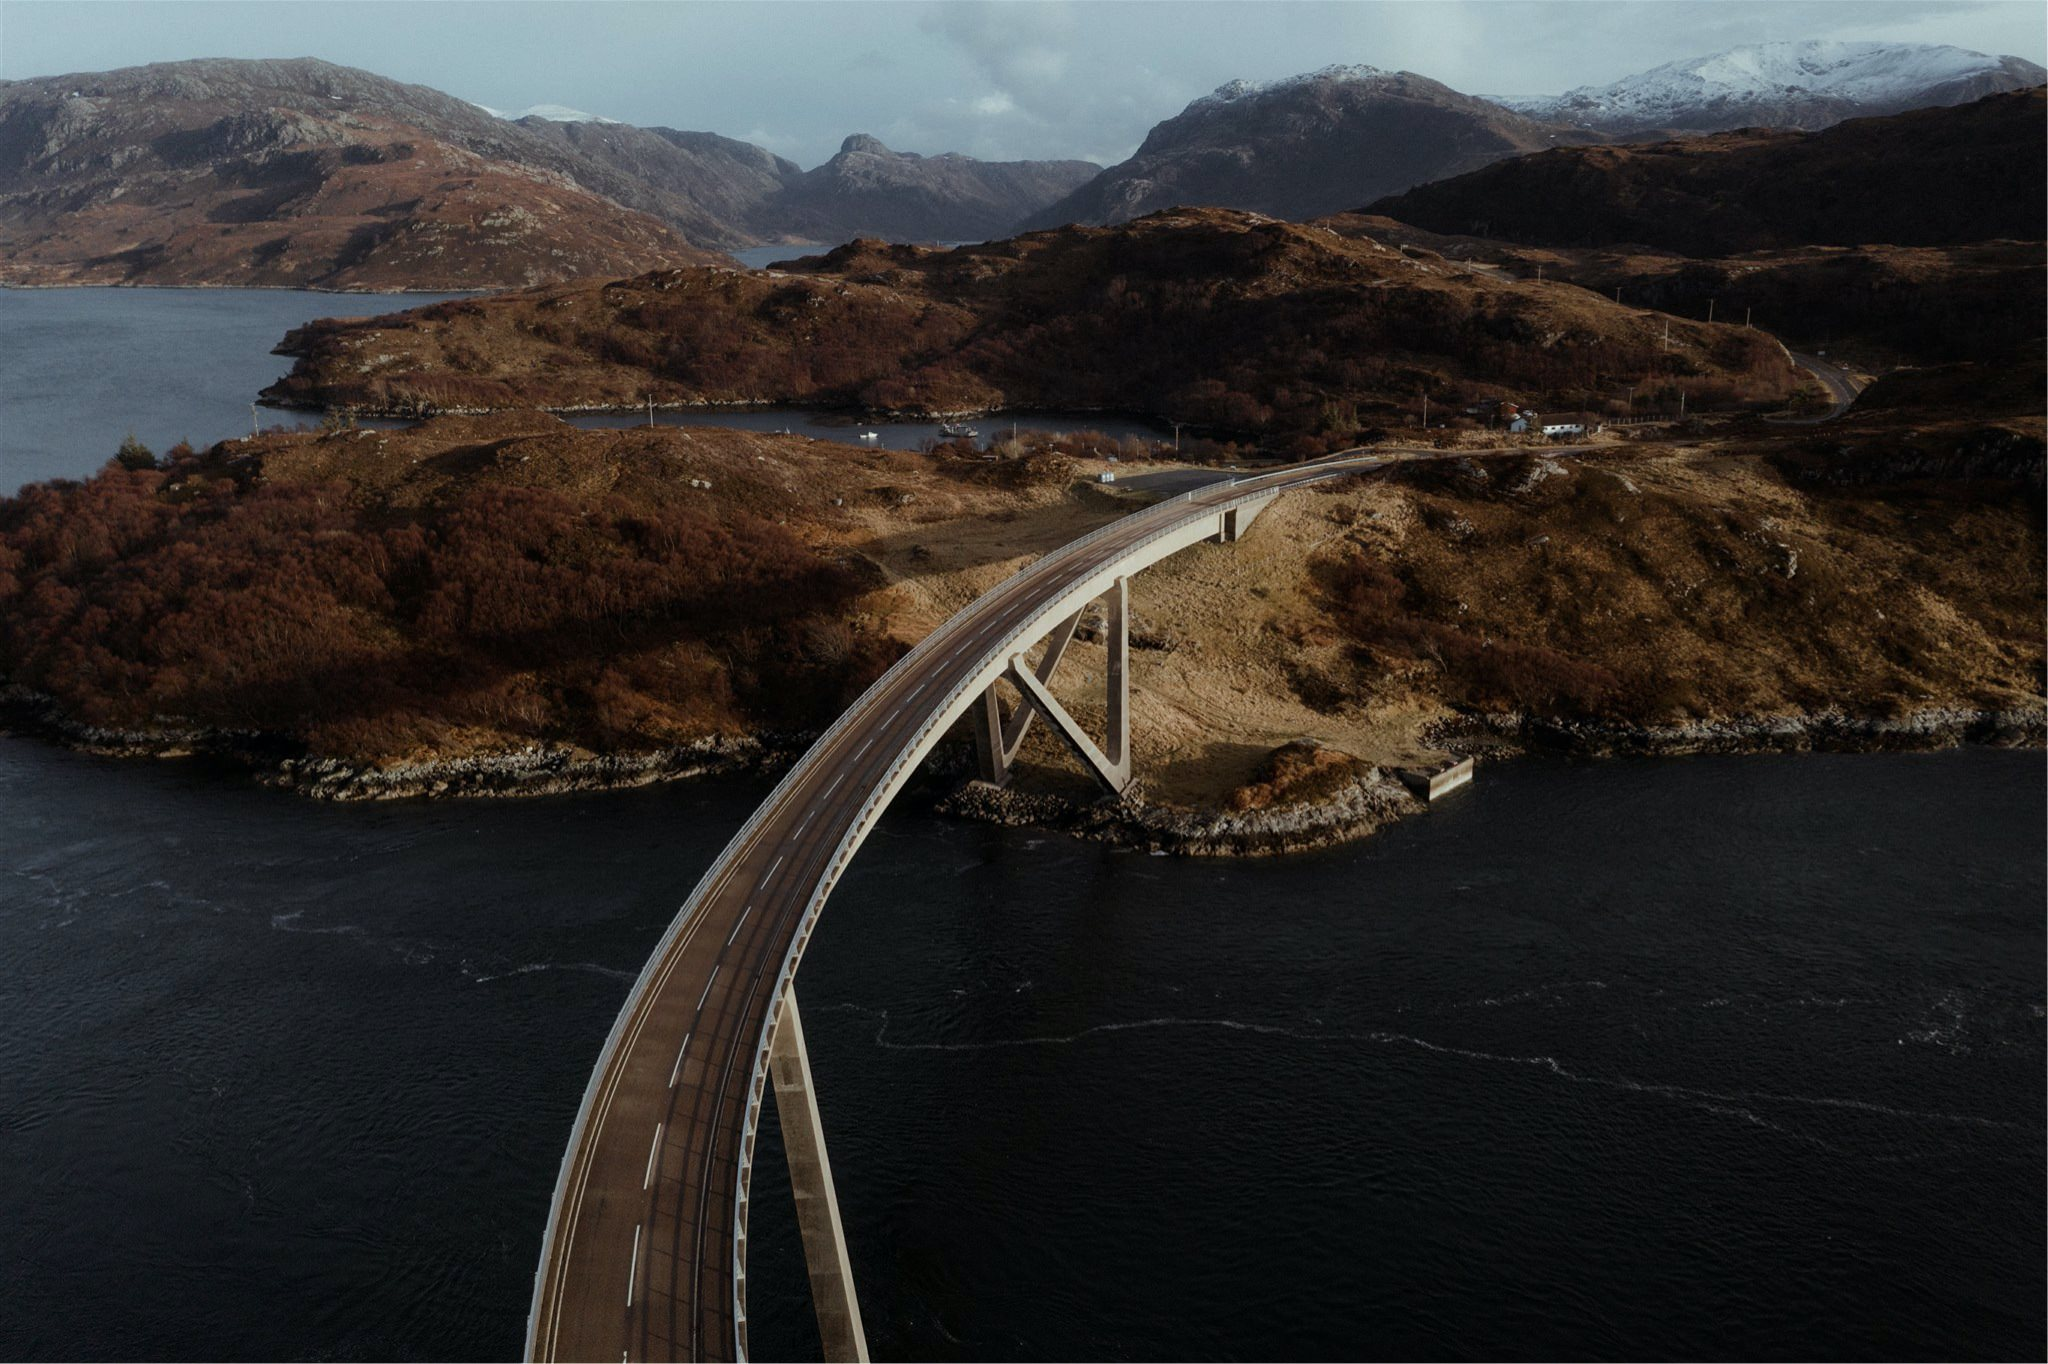 Drone shot of bridge with mountain backdrop in Assynt, Scotland